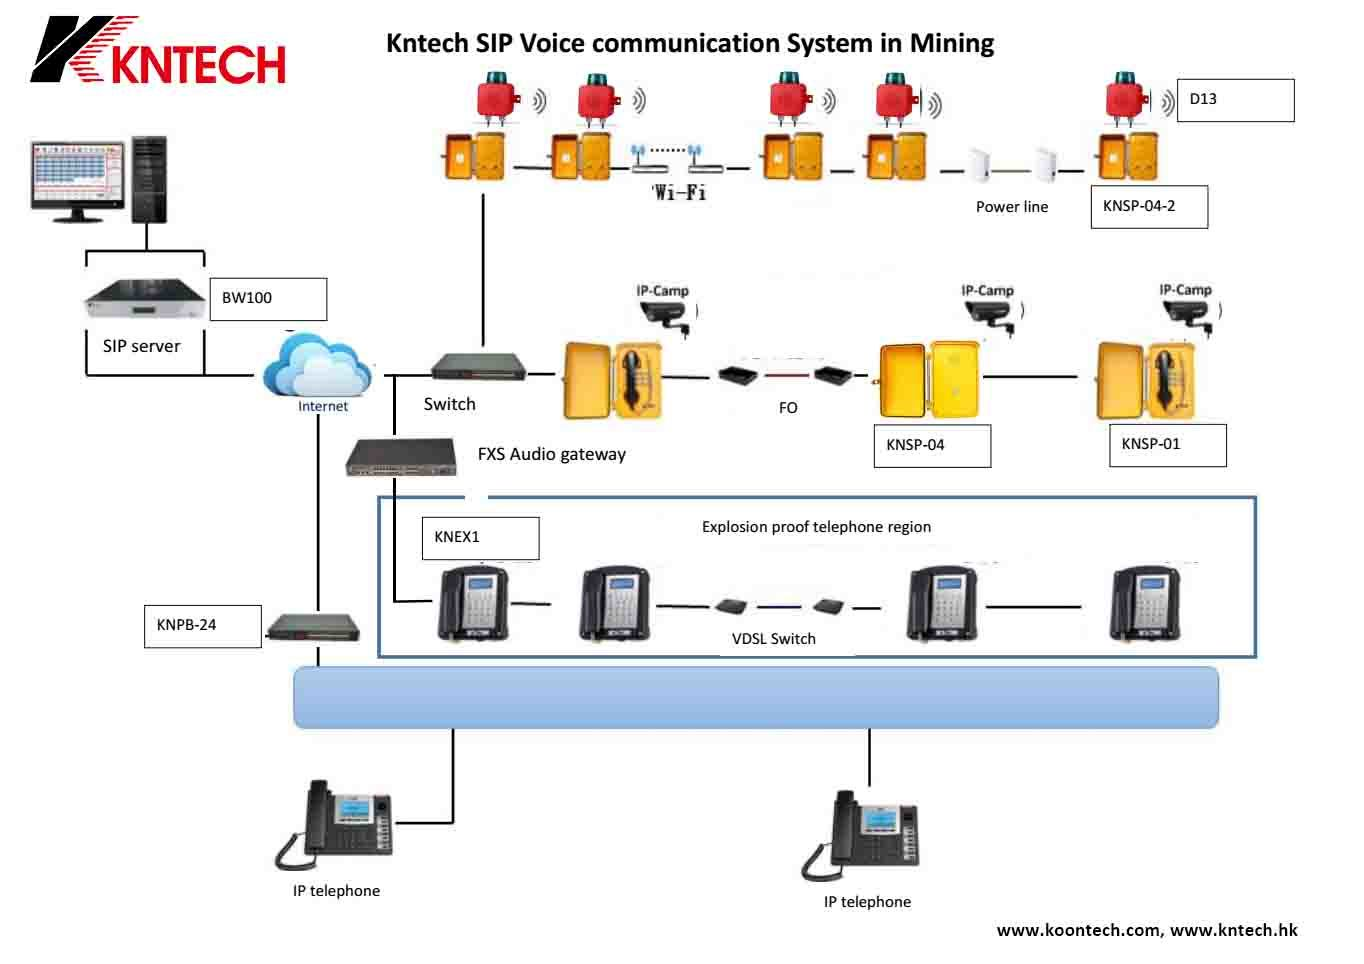 Kntech SIP communication system in mining